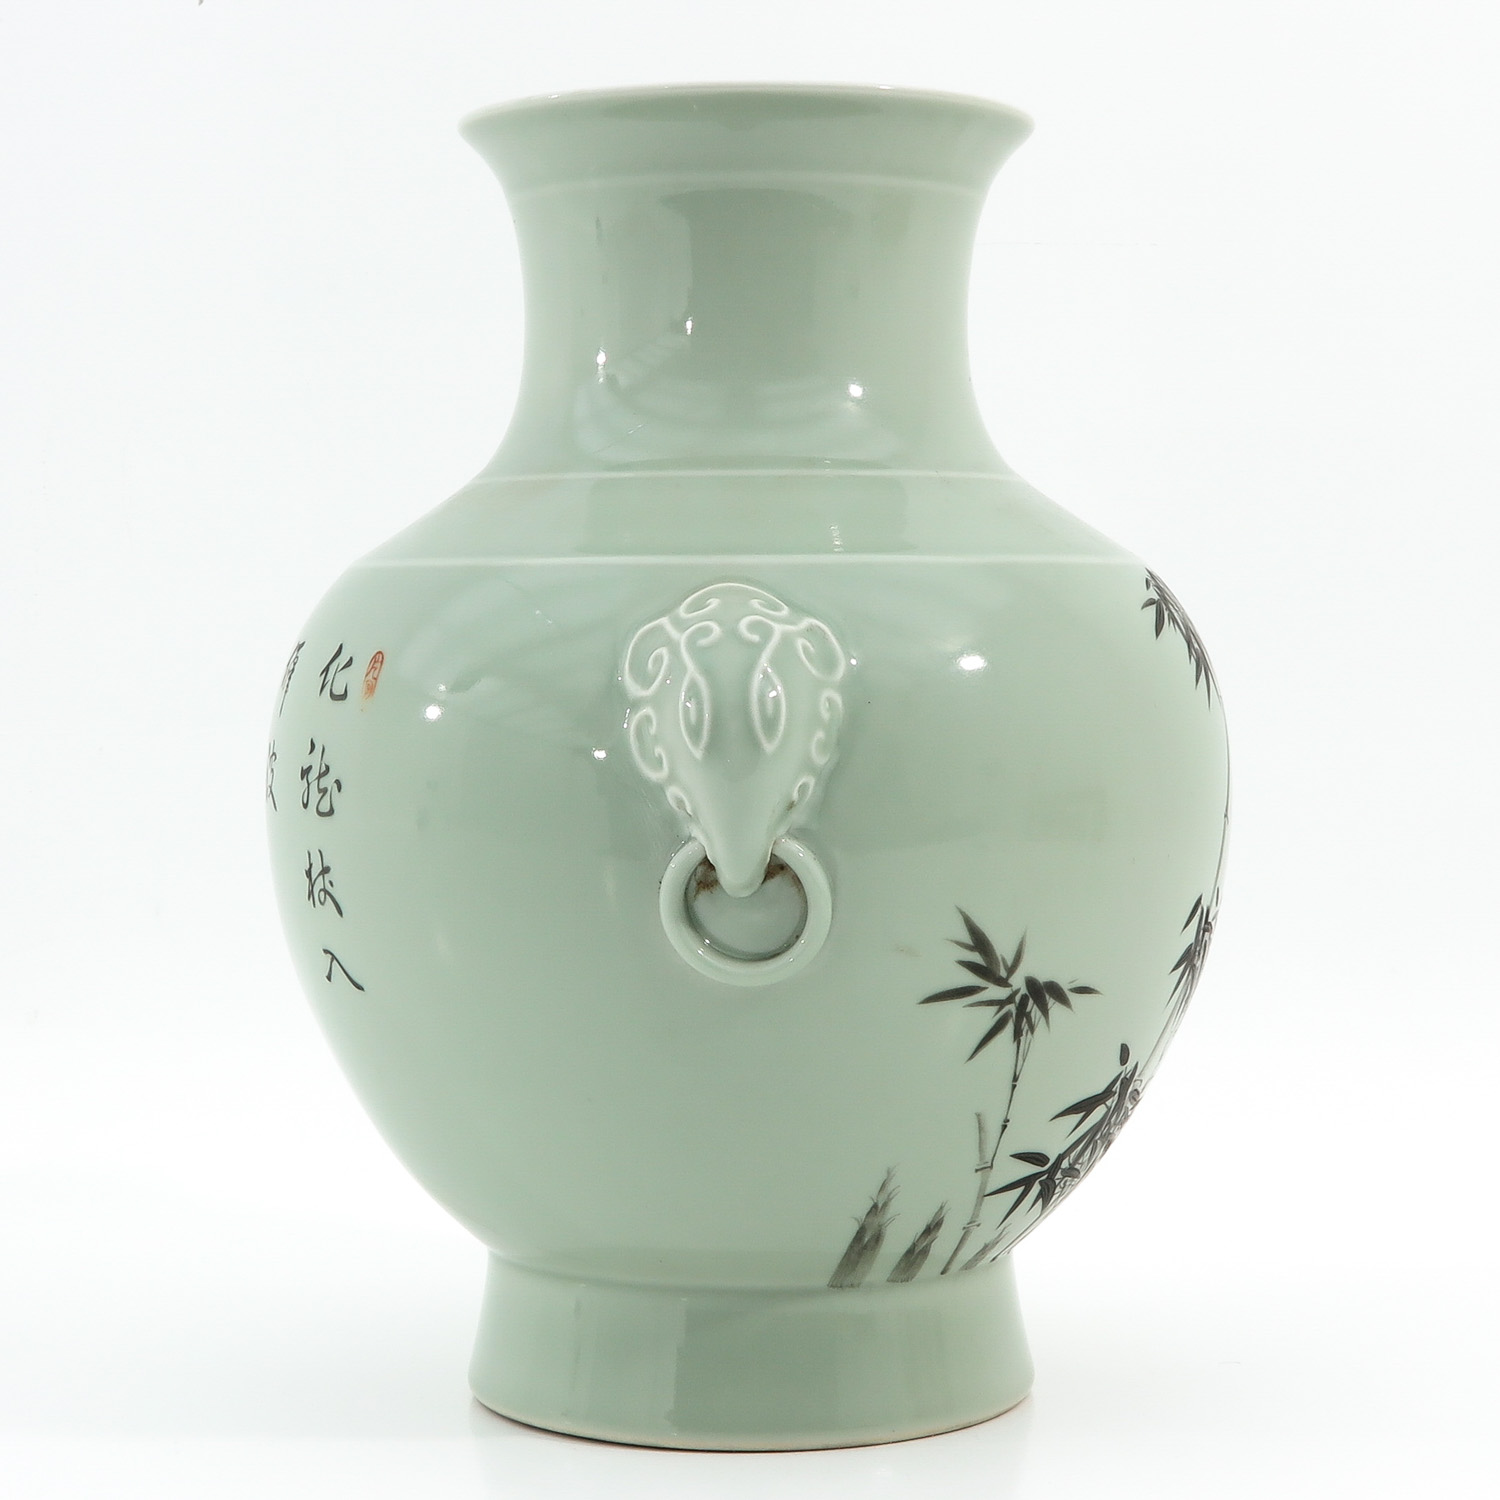 A Celdaon Vase - Image 4 of 10